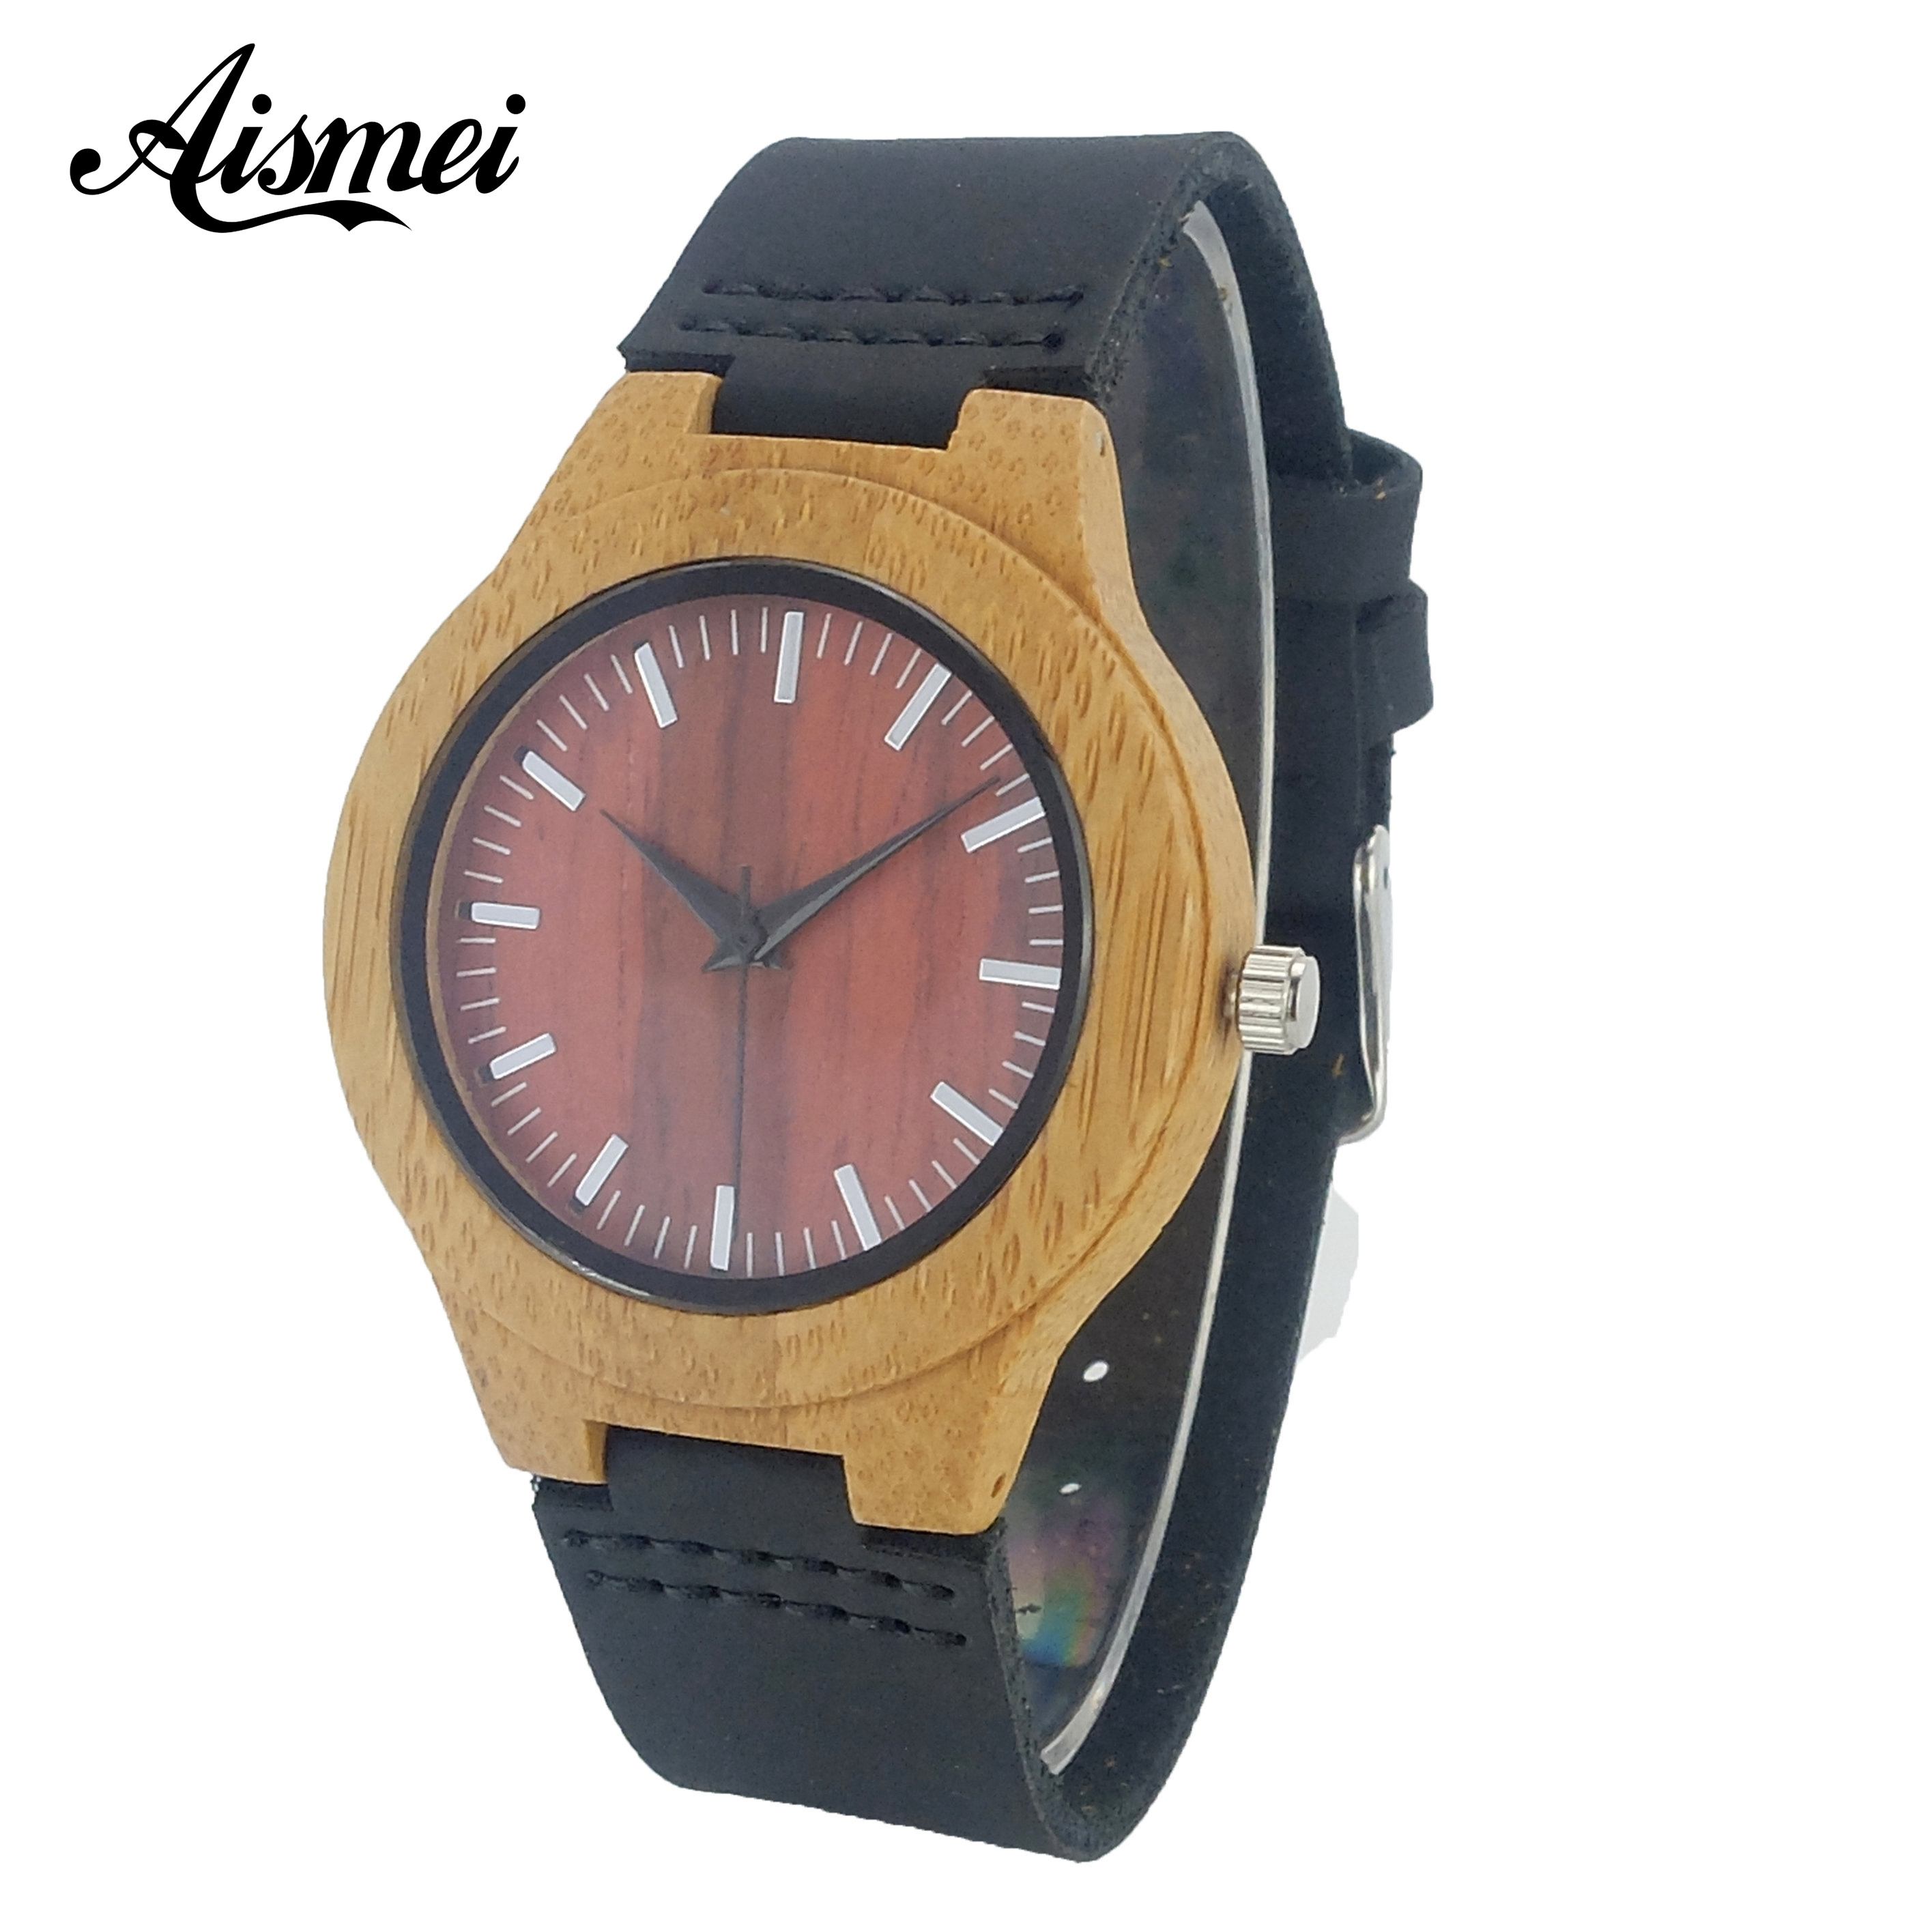 2017 Women Wood Watch Simple Design Fashion Analog Casual Bamboo Wrist Watch With Genuine Leather female Clock Reloj de madera fashion top gift item wood watches men s analog simple hand made wrist watch male sports quartz watch reloj de madera